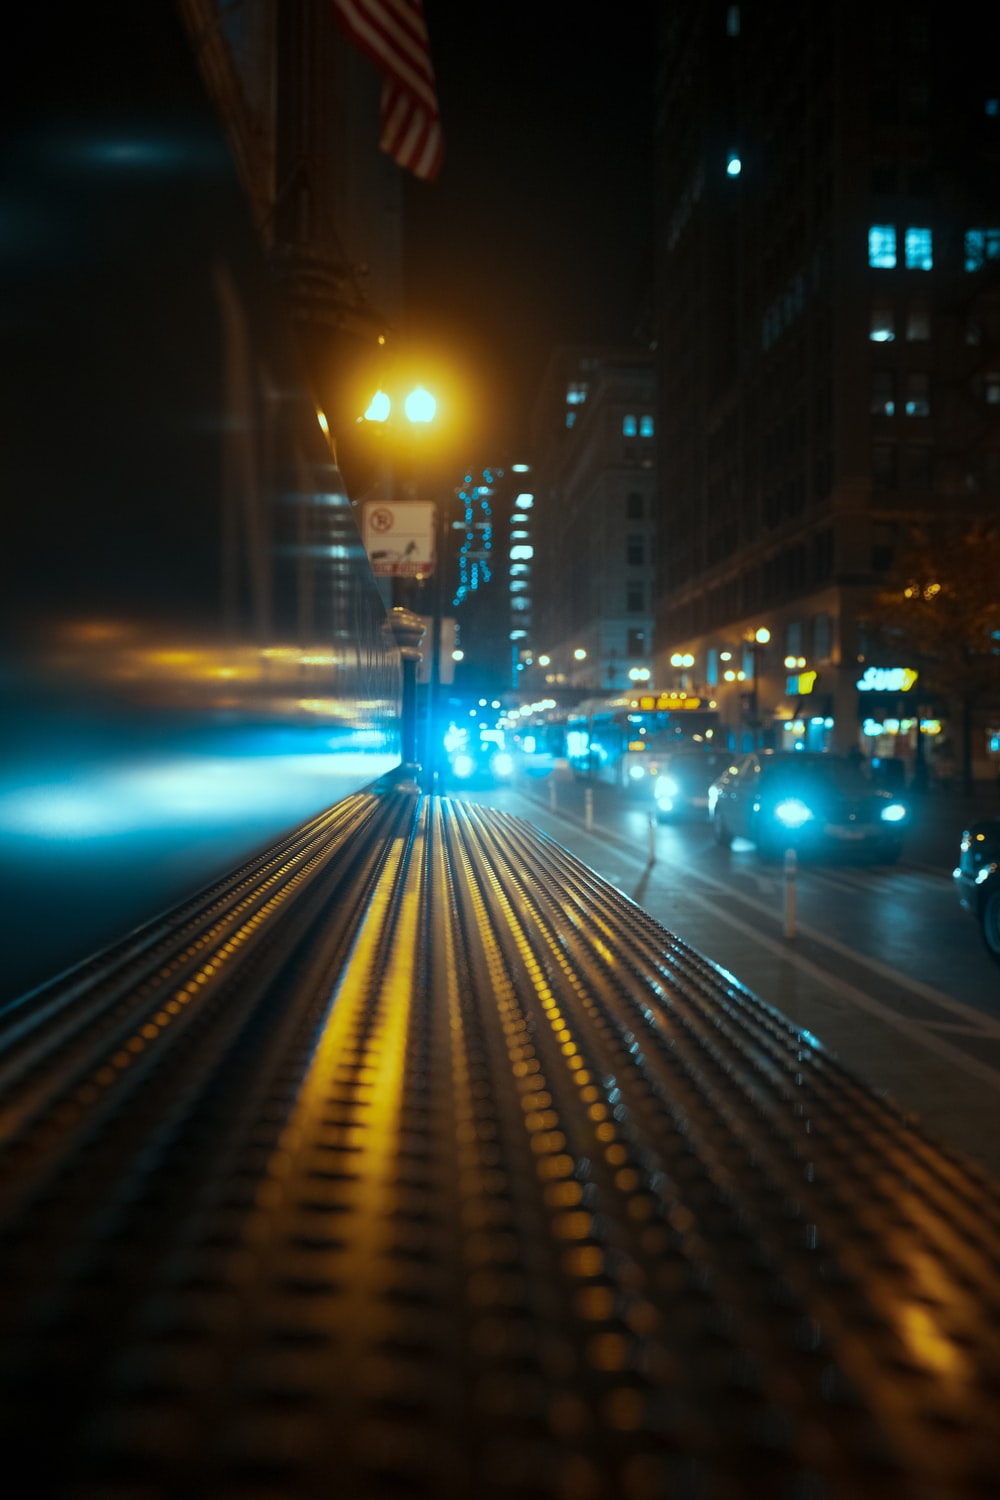 cars on road during night time